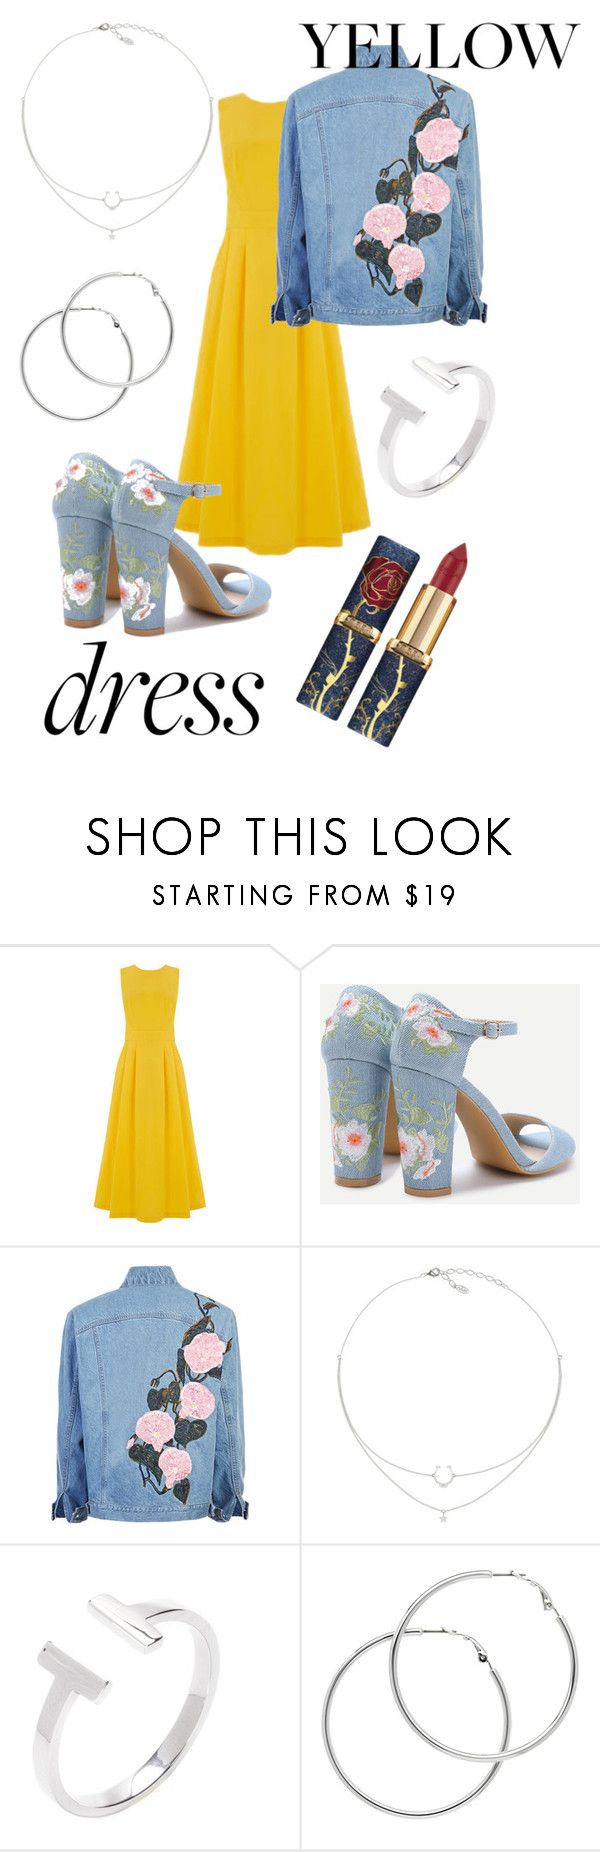 """Jeans with everything."" by luisa-garcia-6 ❤ liked on Polyvore featuring Warehouse and Melissa Odabash"